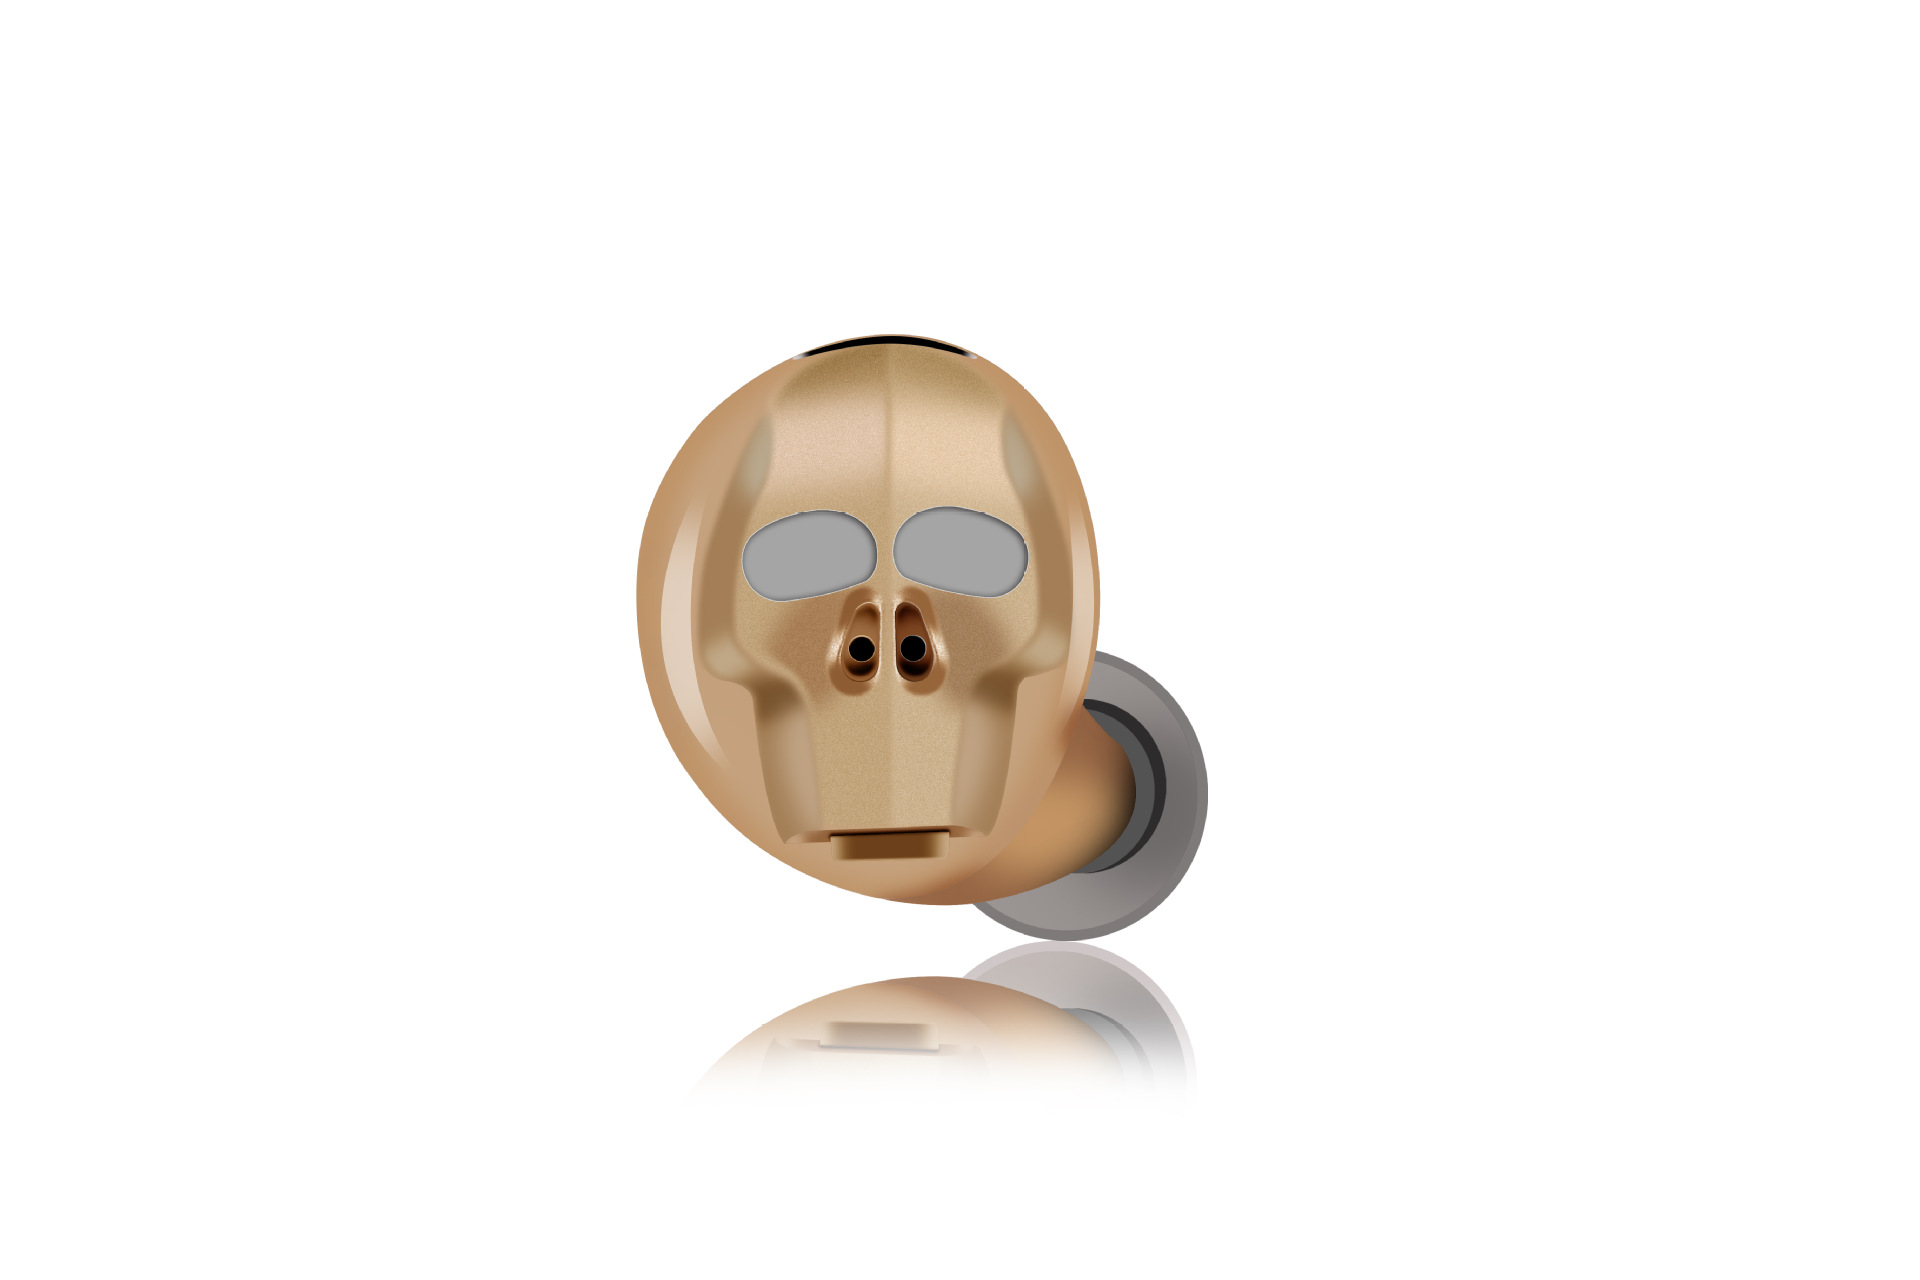 Wireless Headset Invisible Earplugs Mini Wireless Skull Head Design Sweatproof Noise Reduction Hands-free Headphone for Driving Outdoor Sports gold